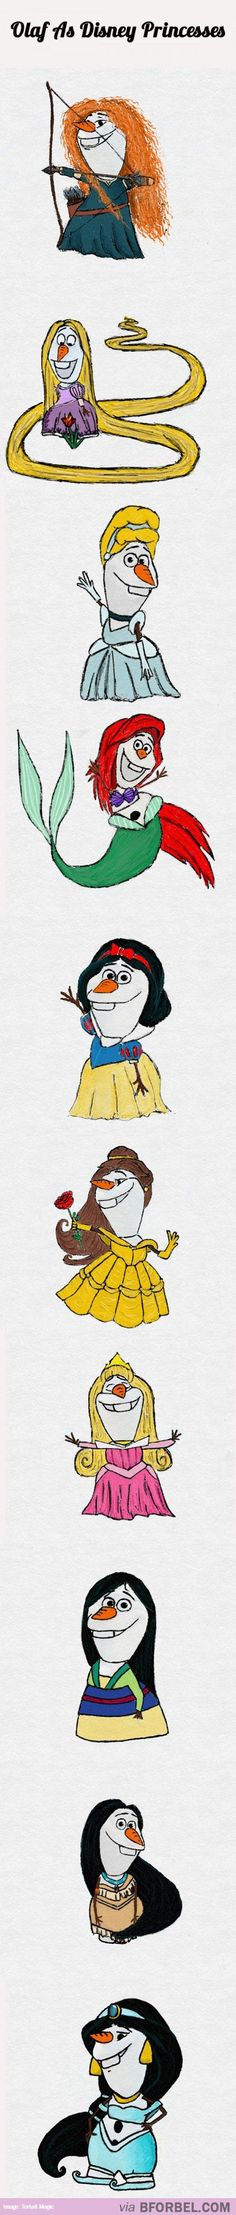 I normally dislike all the weird stuff people turn the princesses into on here, but this one has my approval hahaha